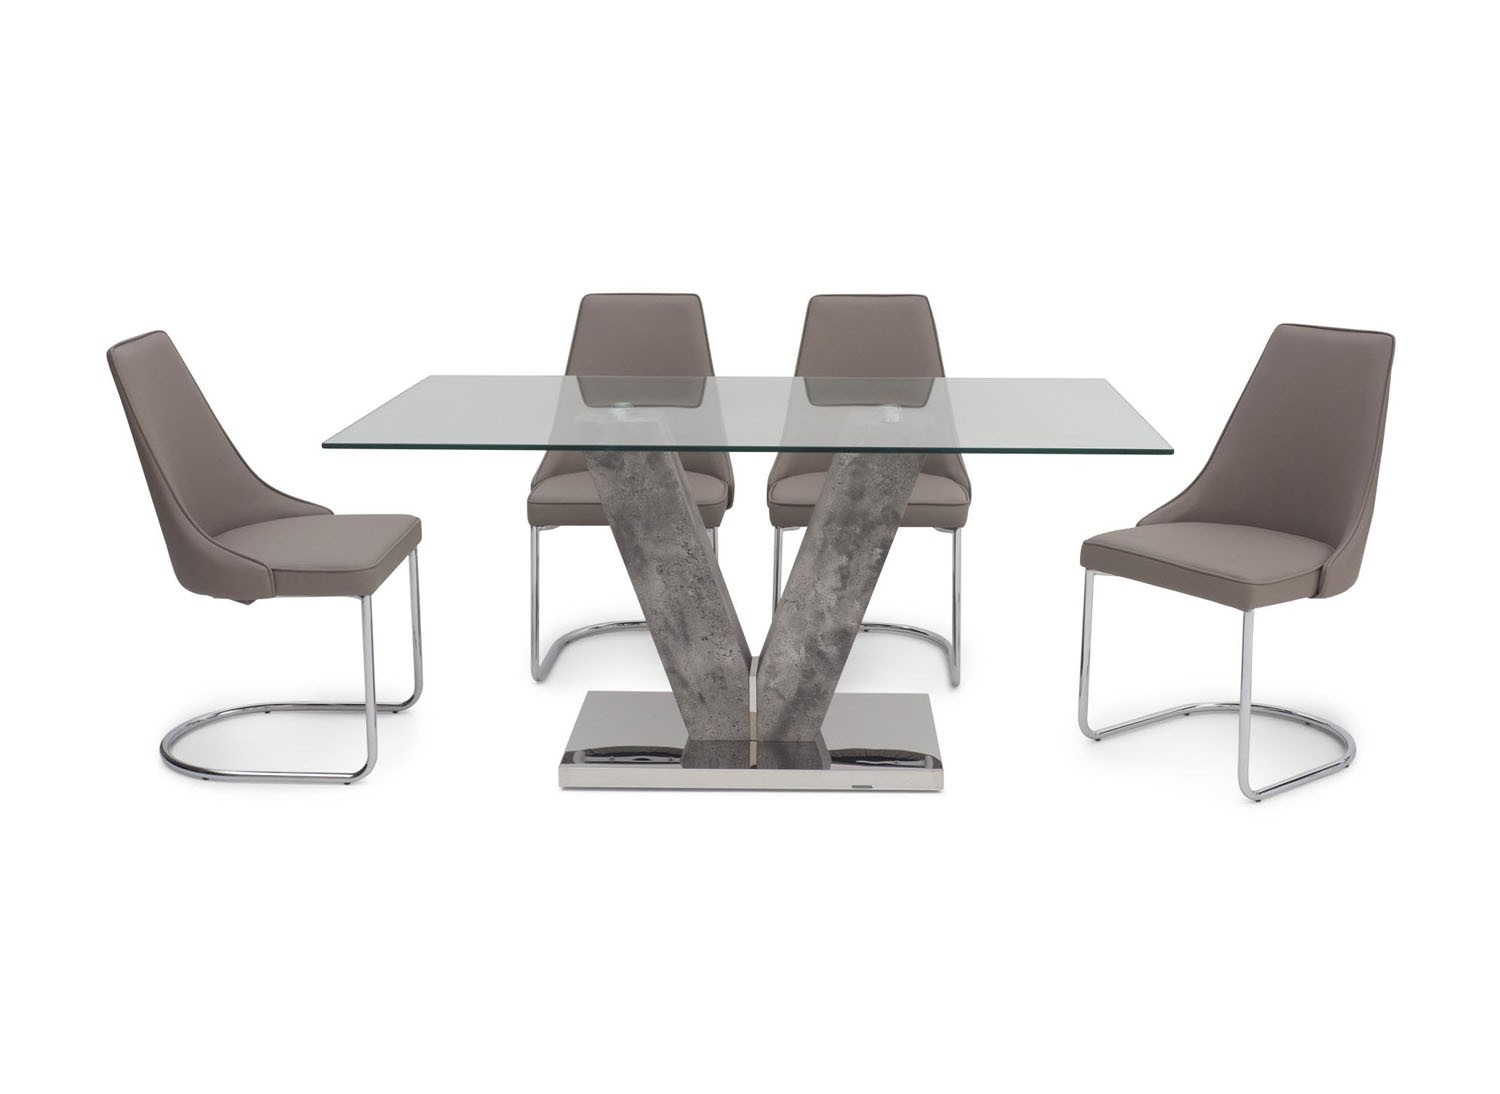 https://www.firstfurniture.co.uk/pub/media/catalog/product/d/o/dolce_dining_table_clear_mya_chair_taupe_2_2.jpg